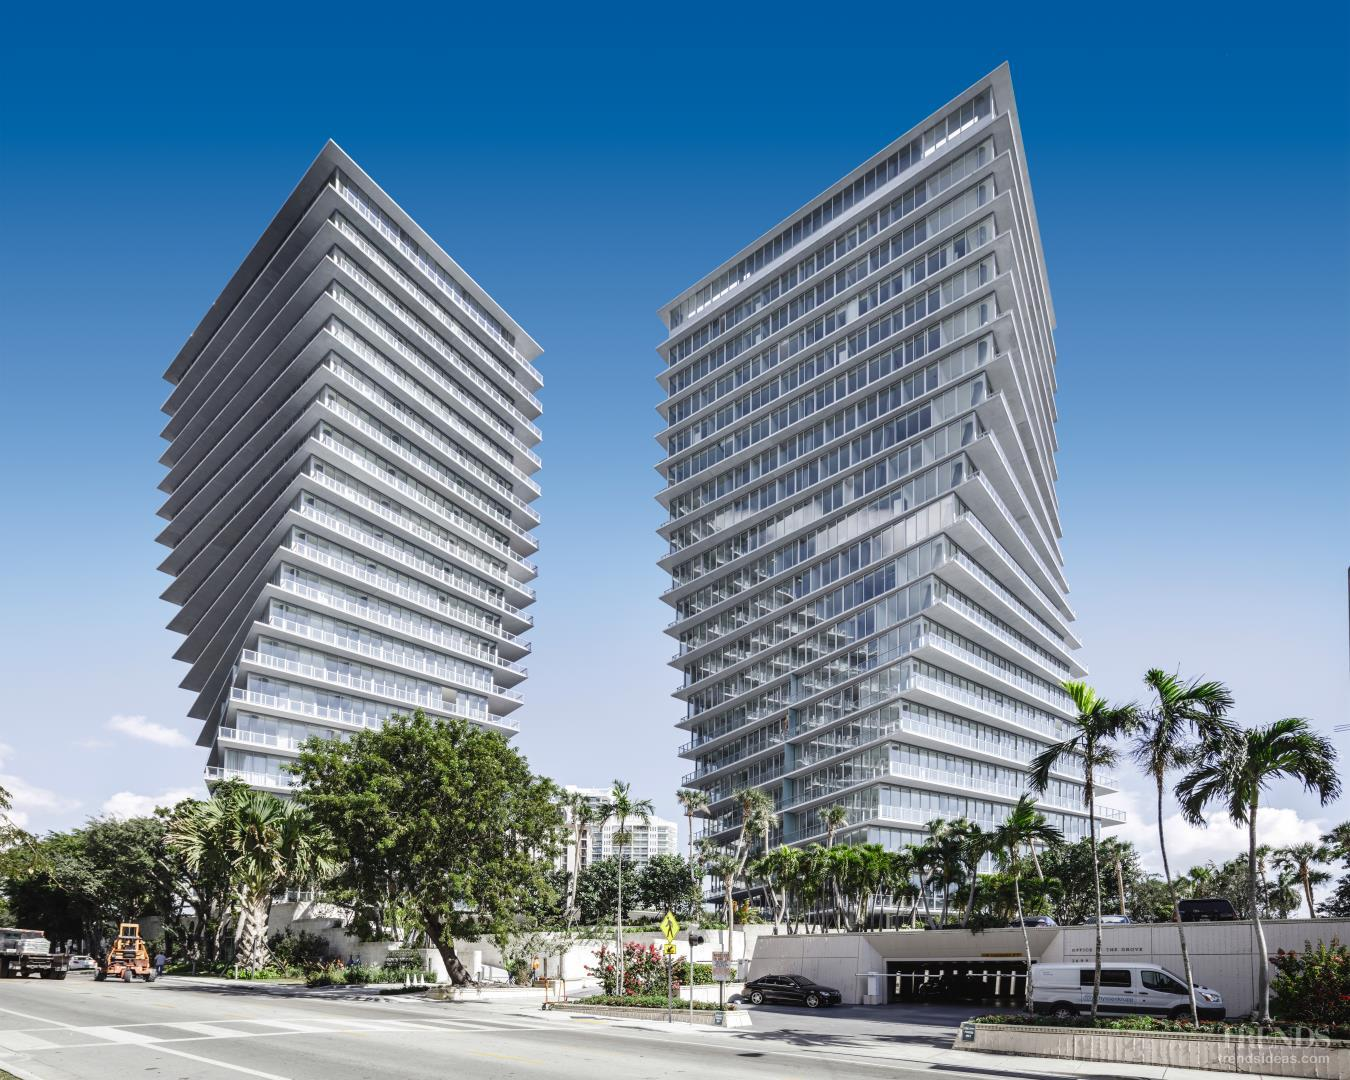 Twisting twin residential towers put a new spin on condominum living in Miami